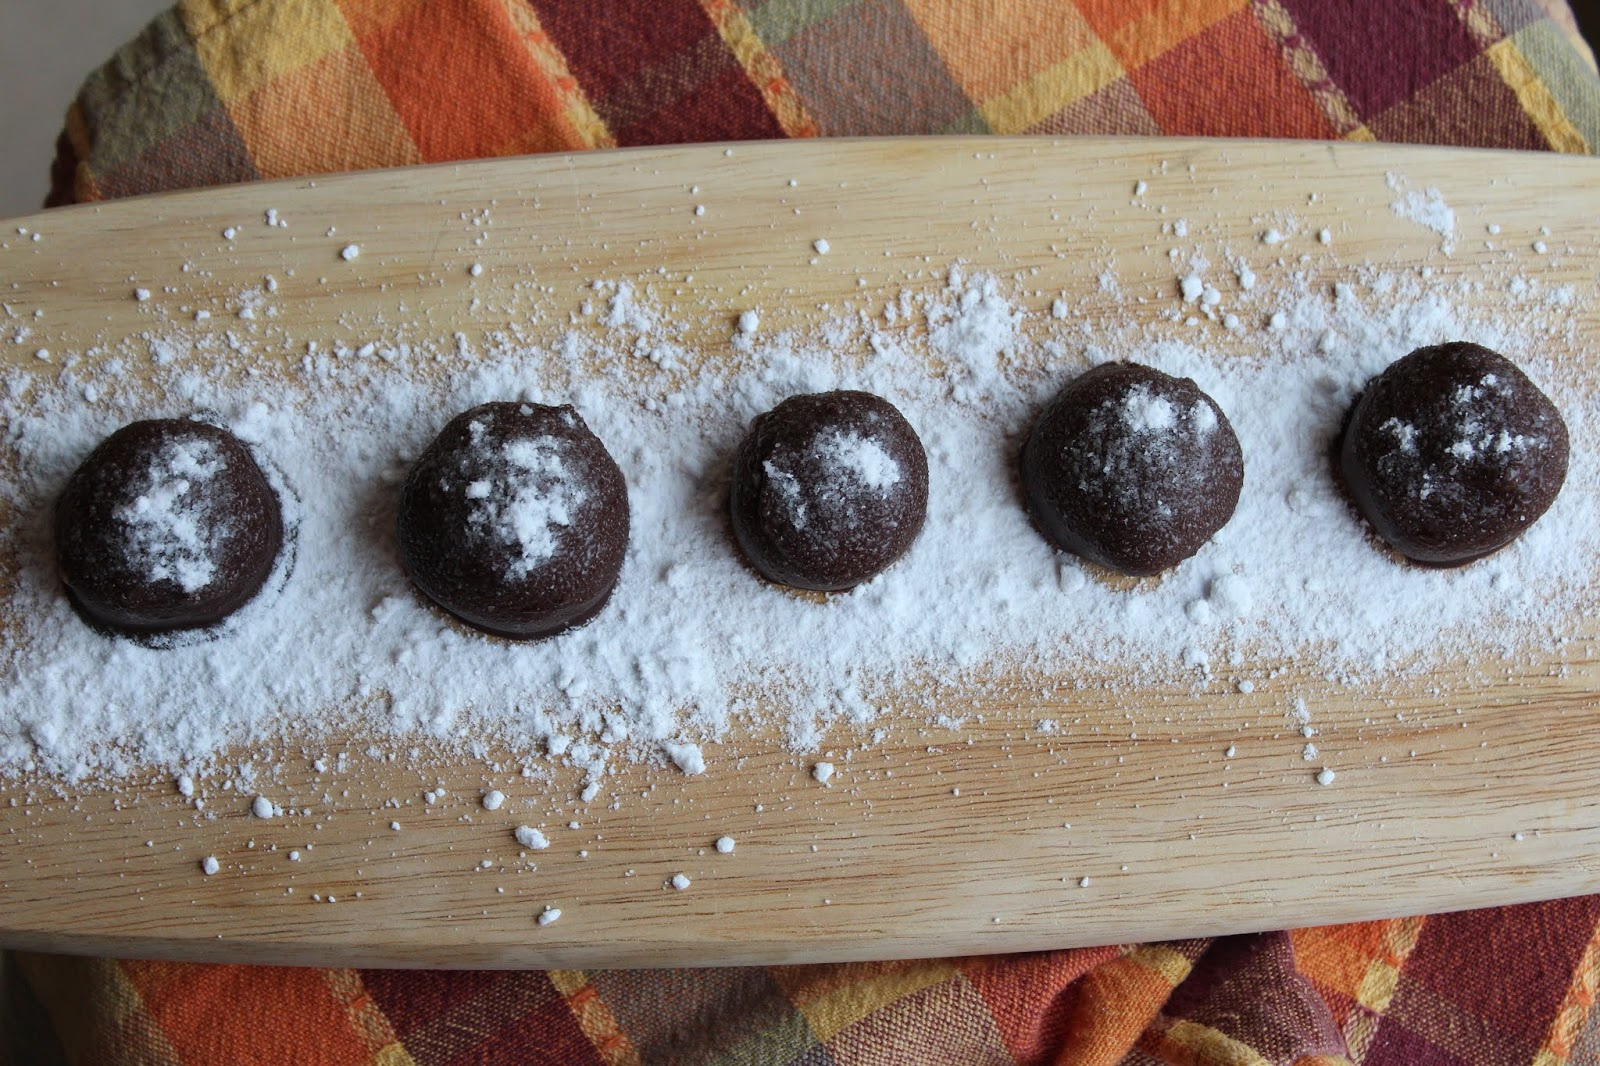 Chocolate Vegan Peanut Butter Balls